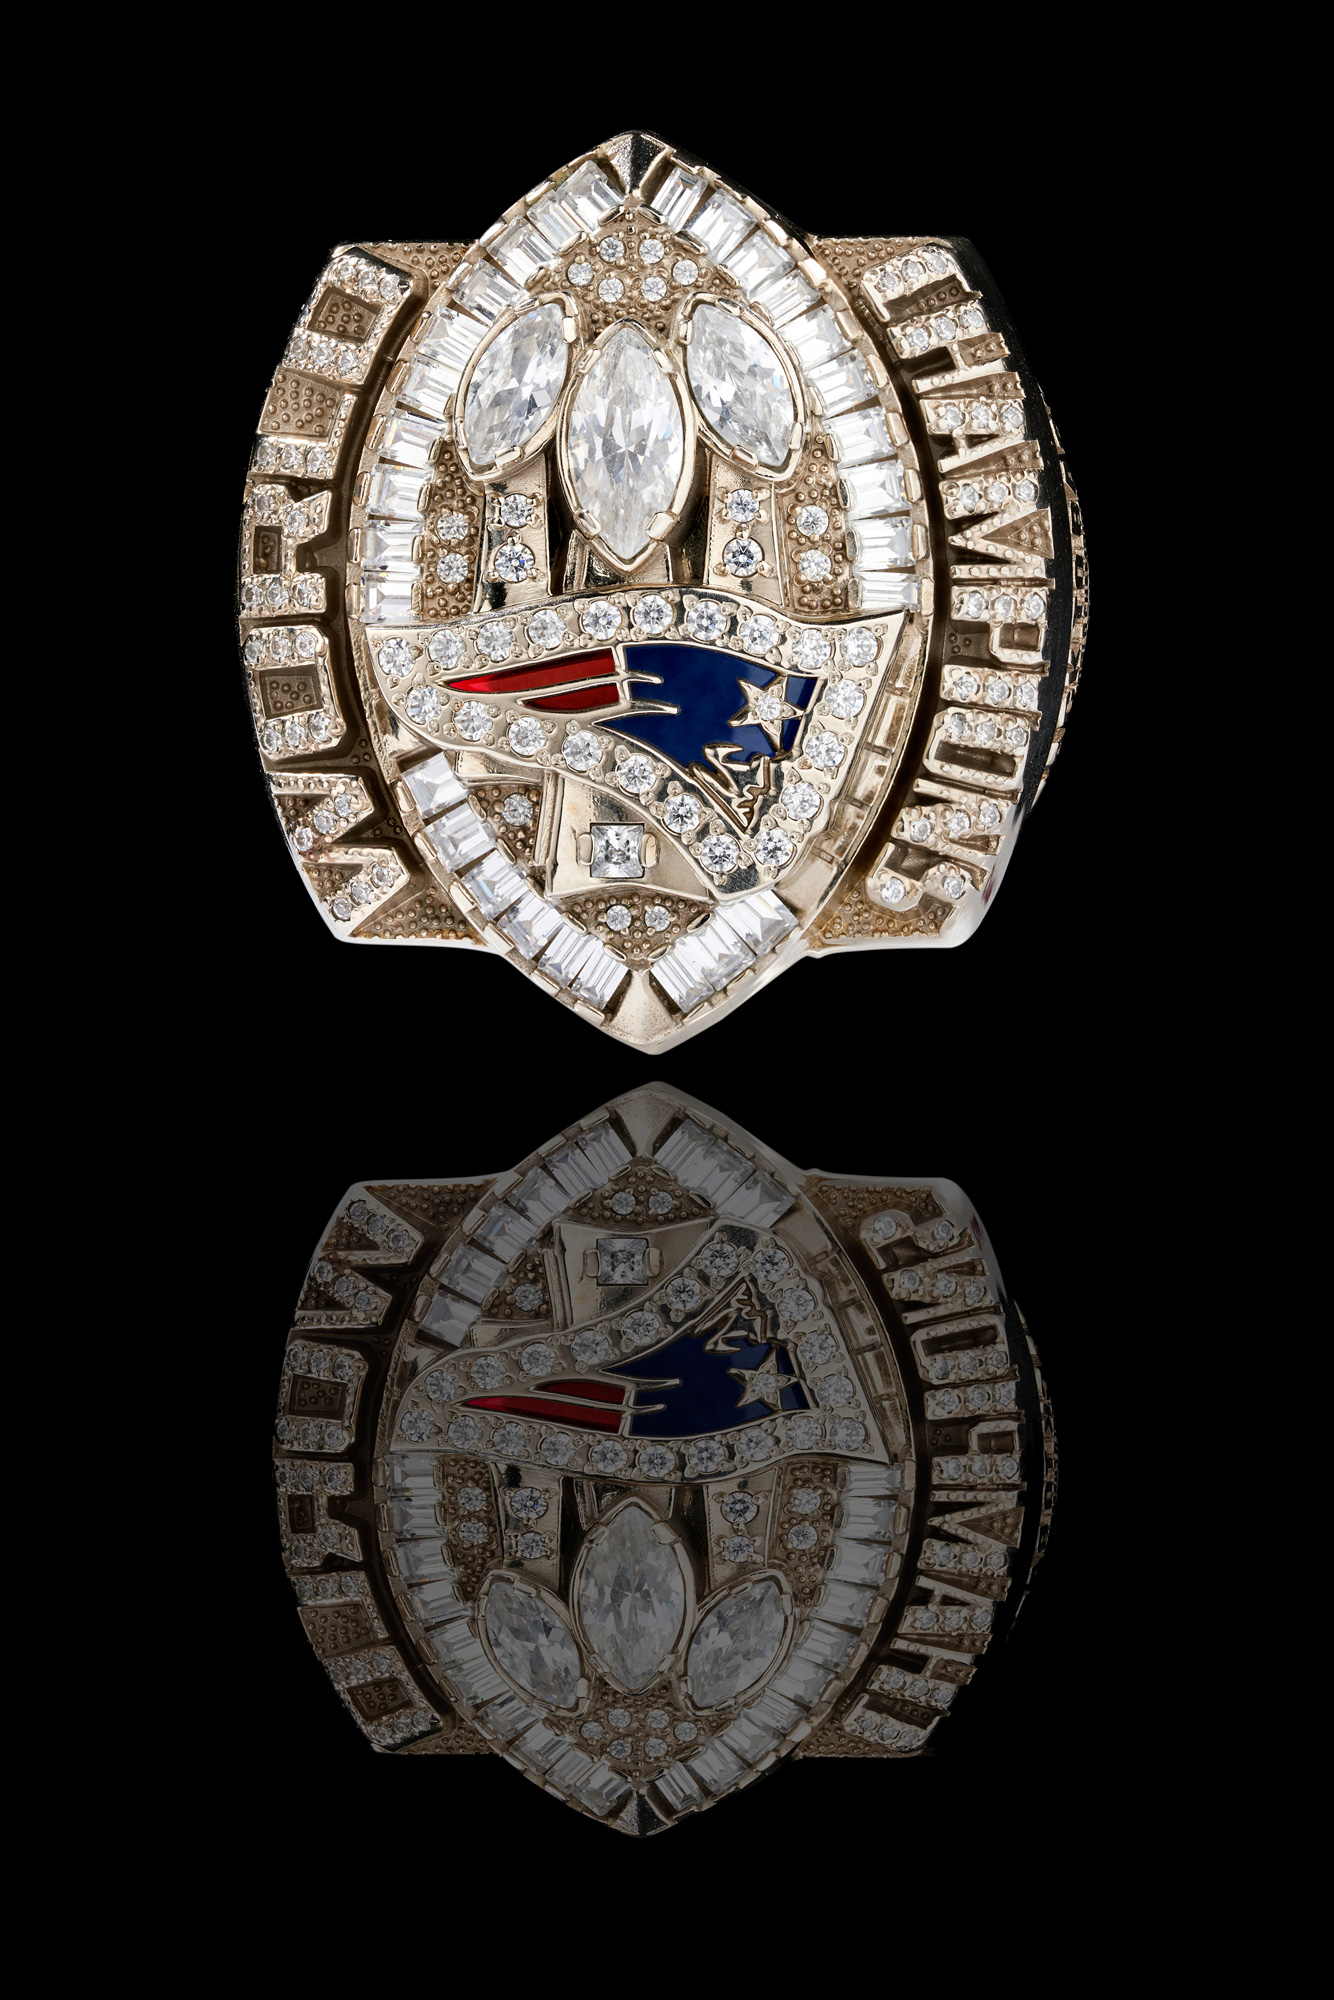 Product-Photograph-of-Super-Bowl-Rings-by-Architectural,-Interior,-and-Product-Photographer-Nick-McGinn-3.web.jpg